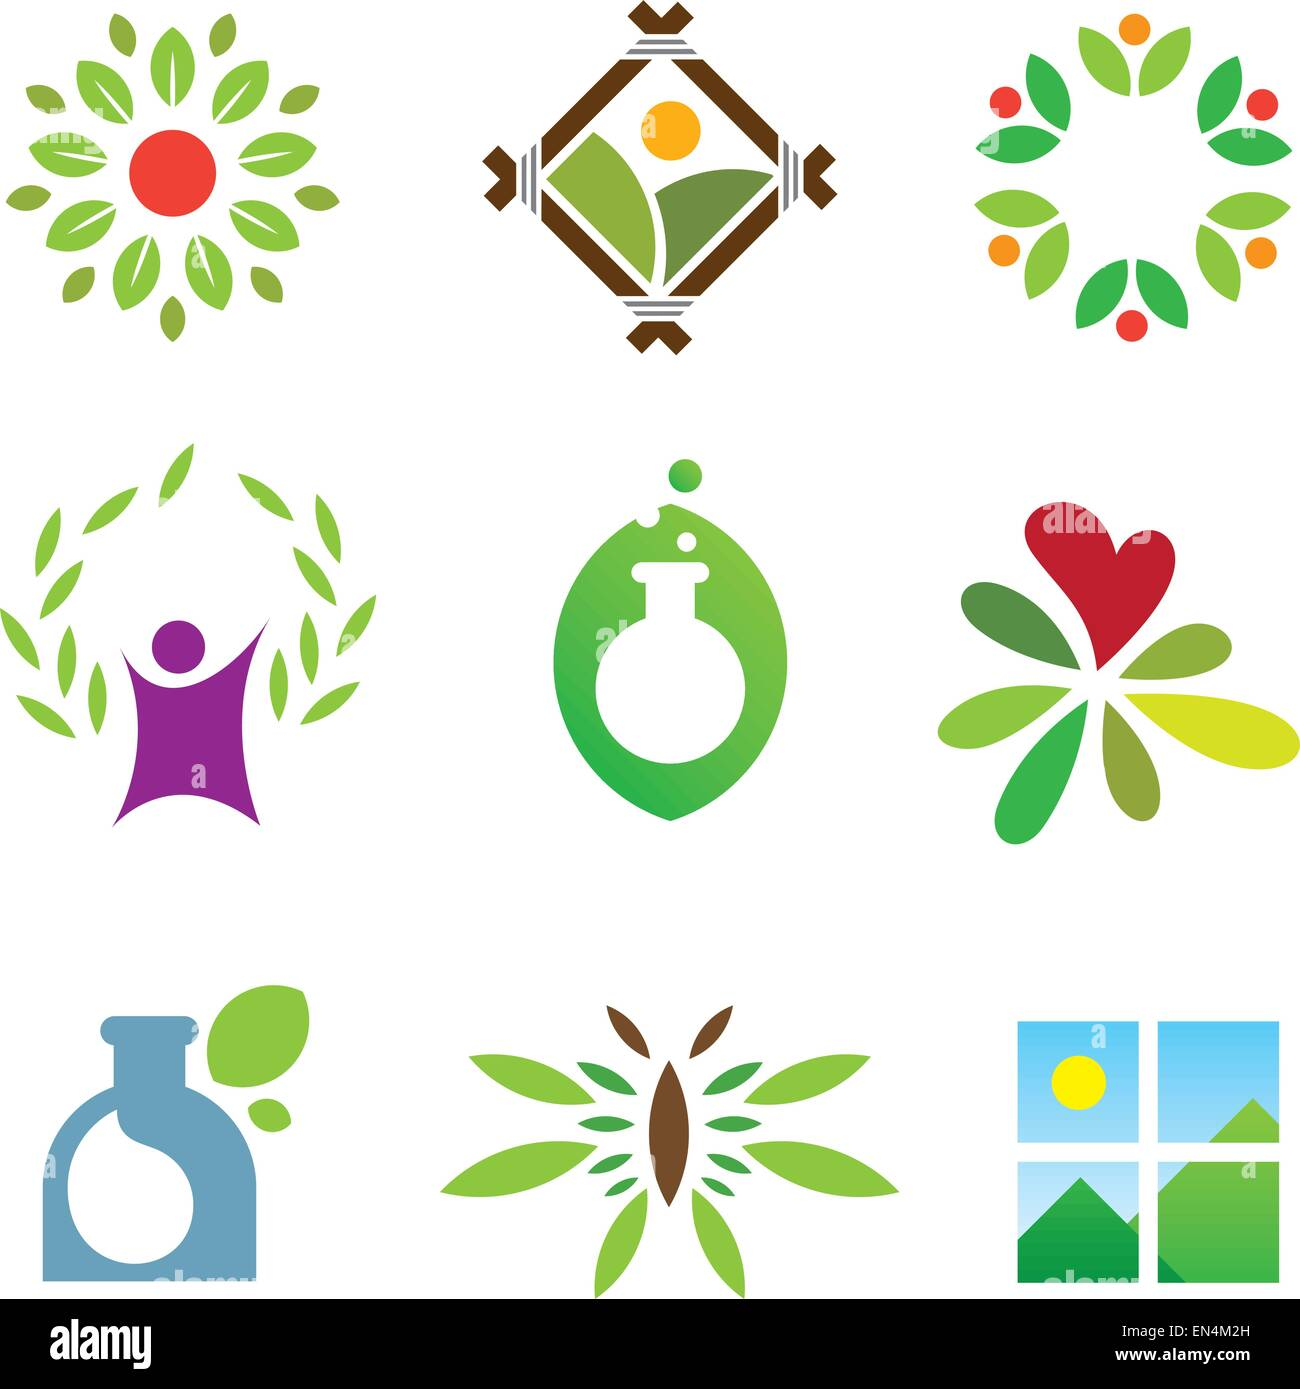 Olympic green success nature leaf landscape healthy care logo icon - Stock Vector